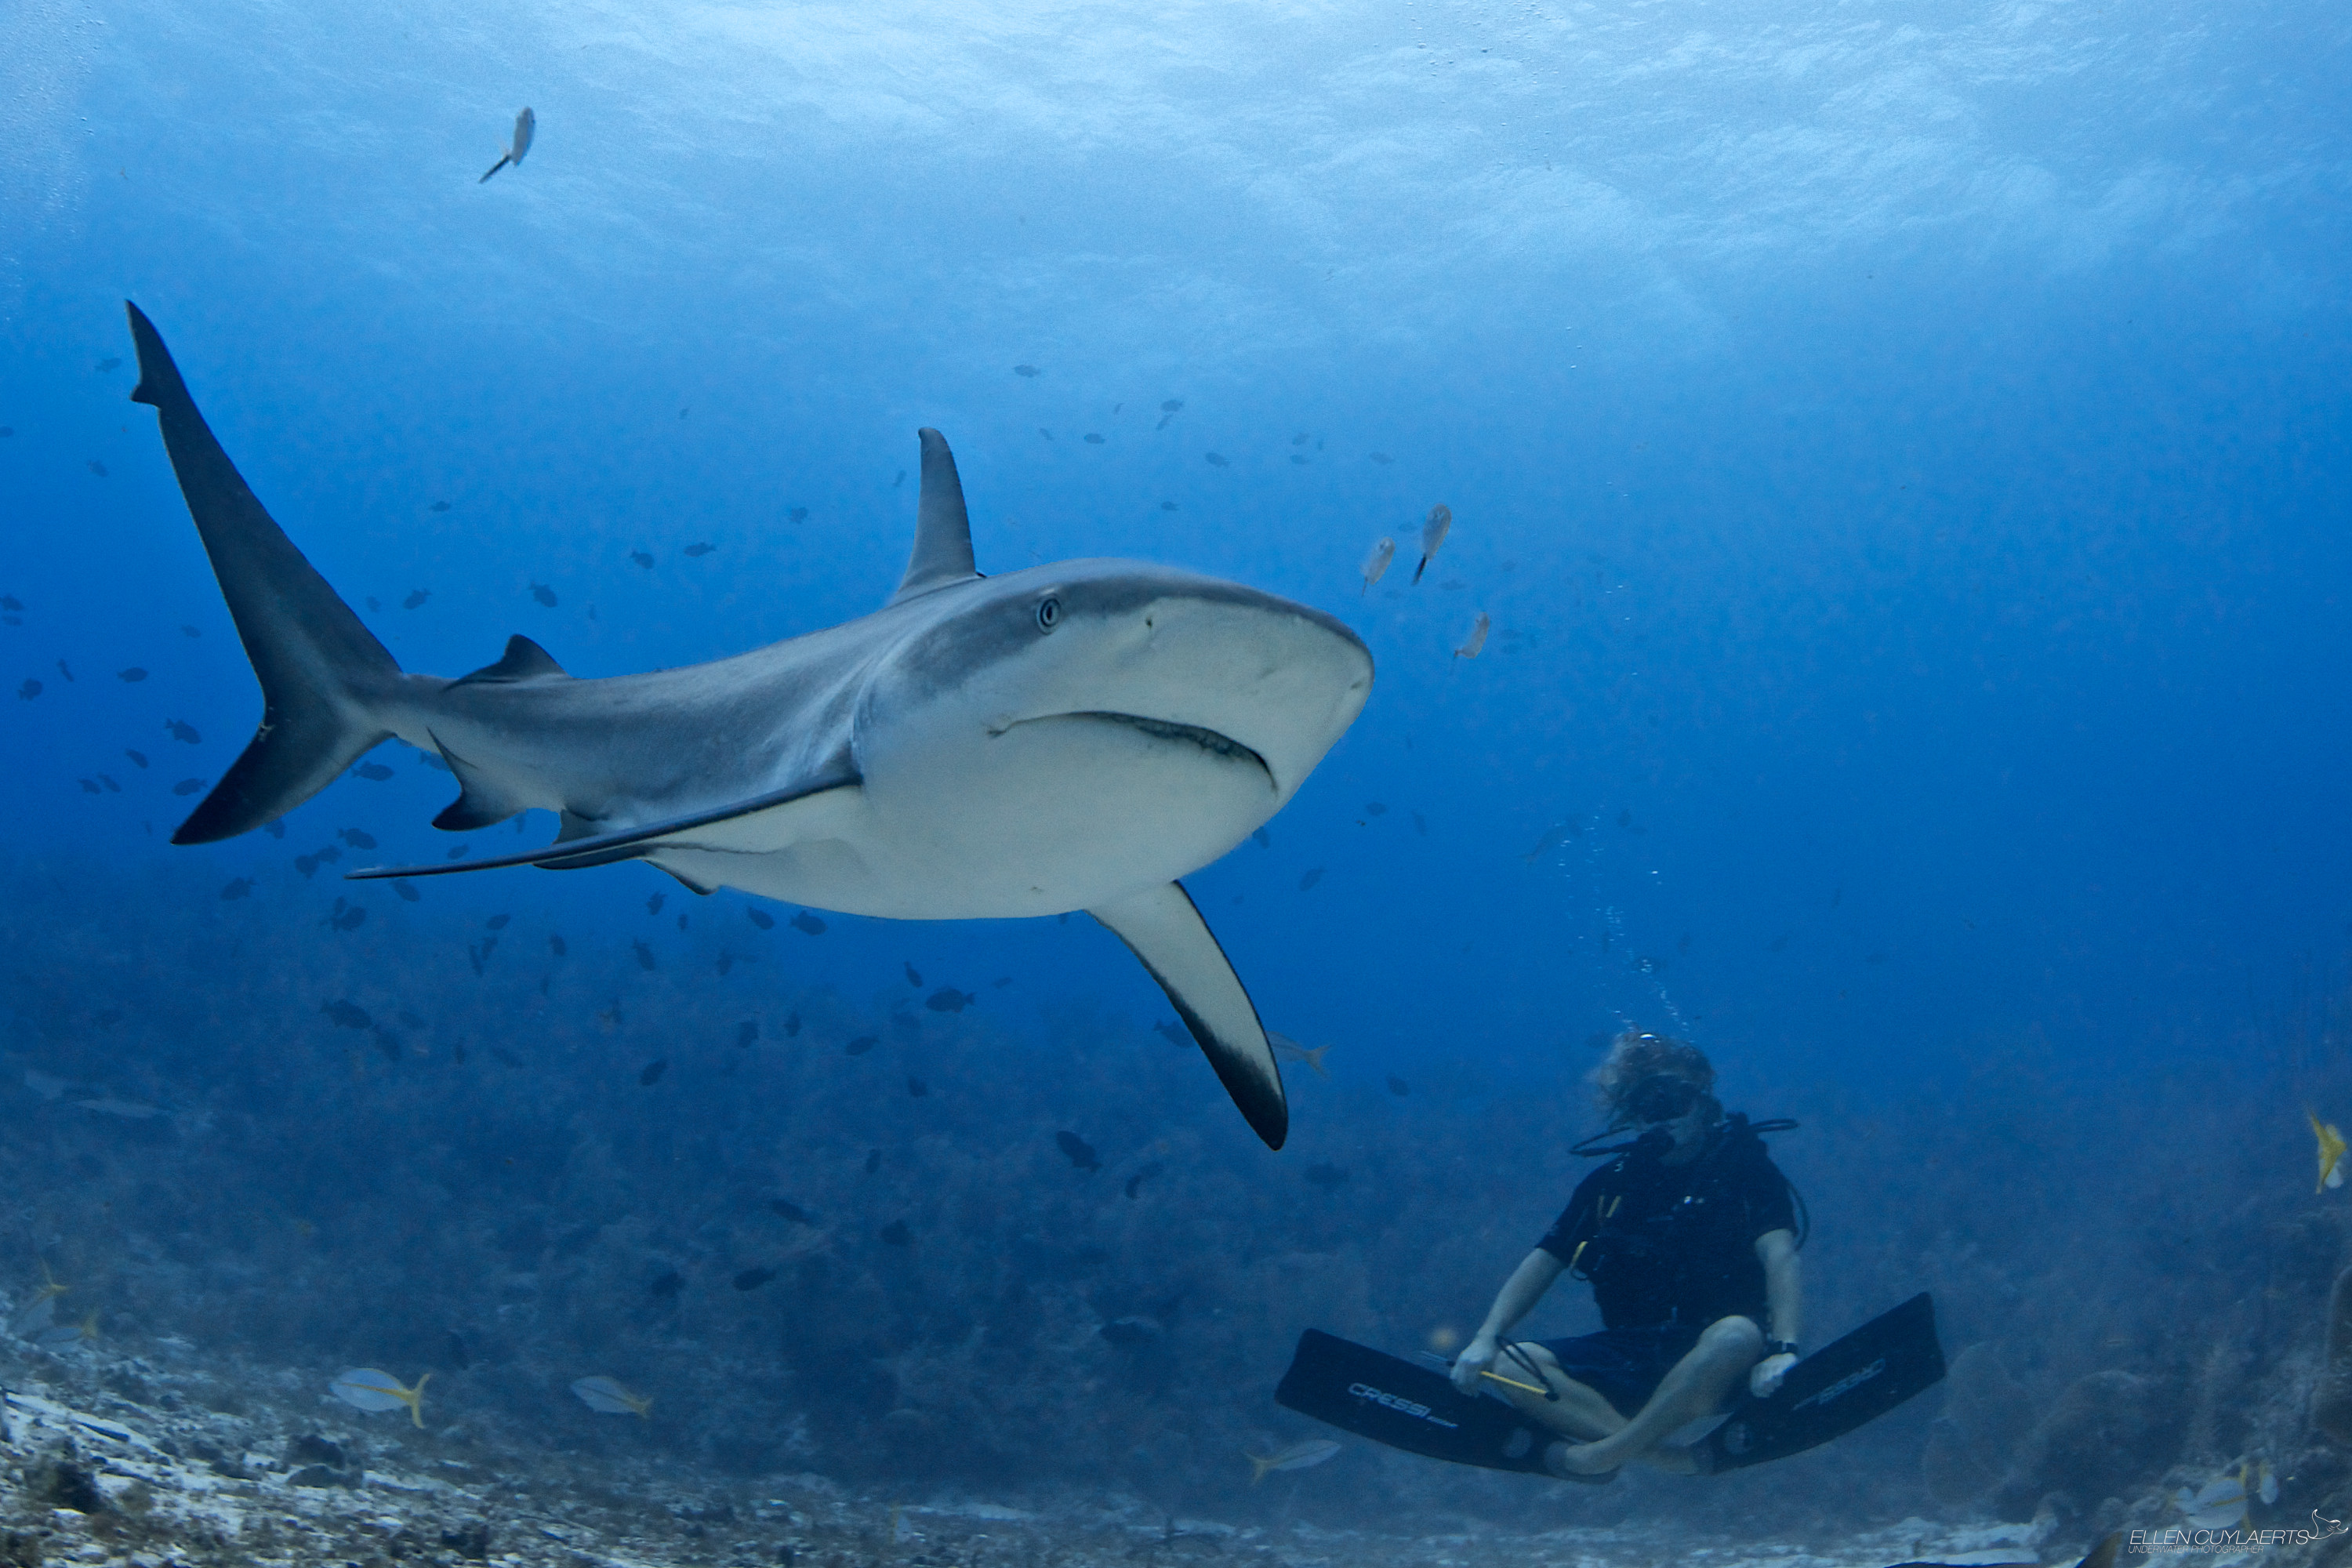 Meet The Fearless Photographer Who Dives With Sharks